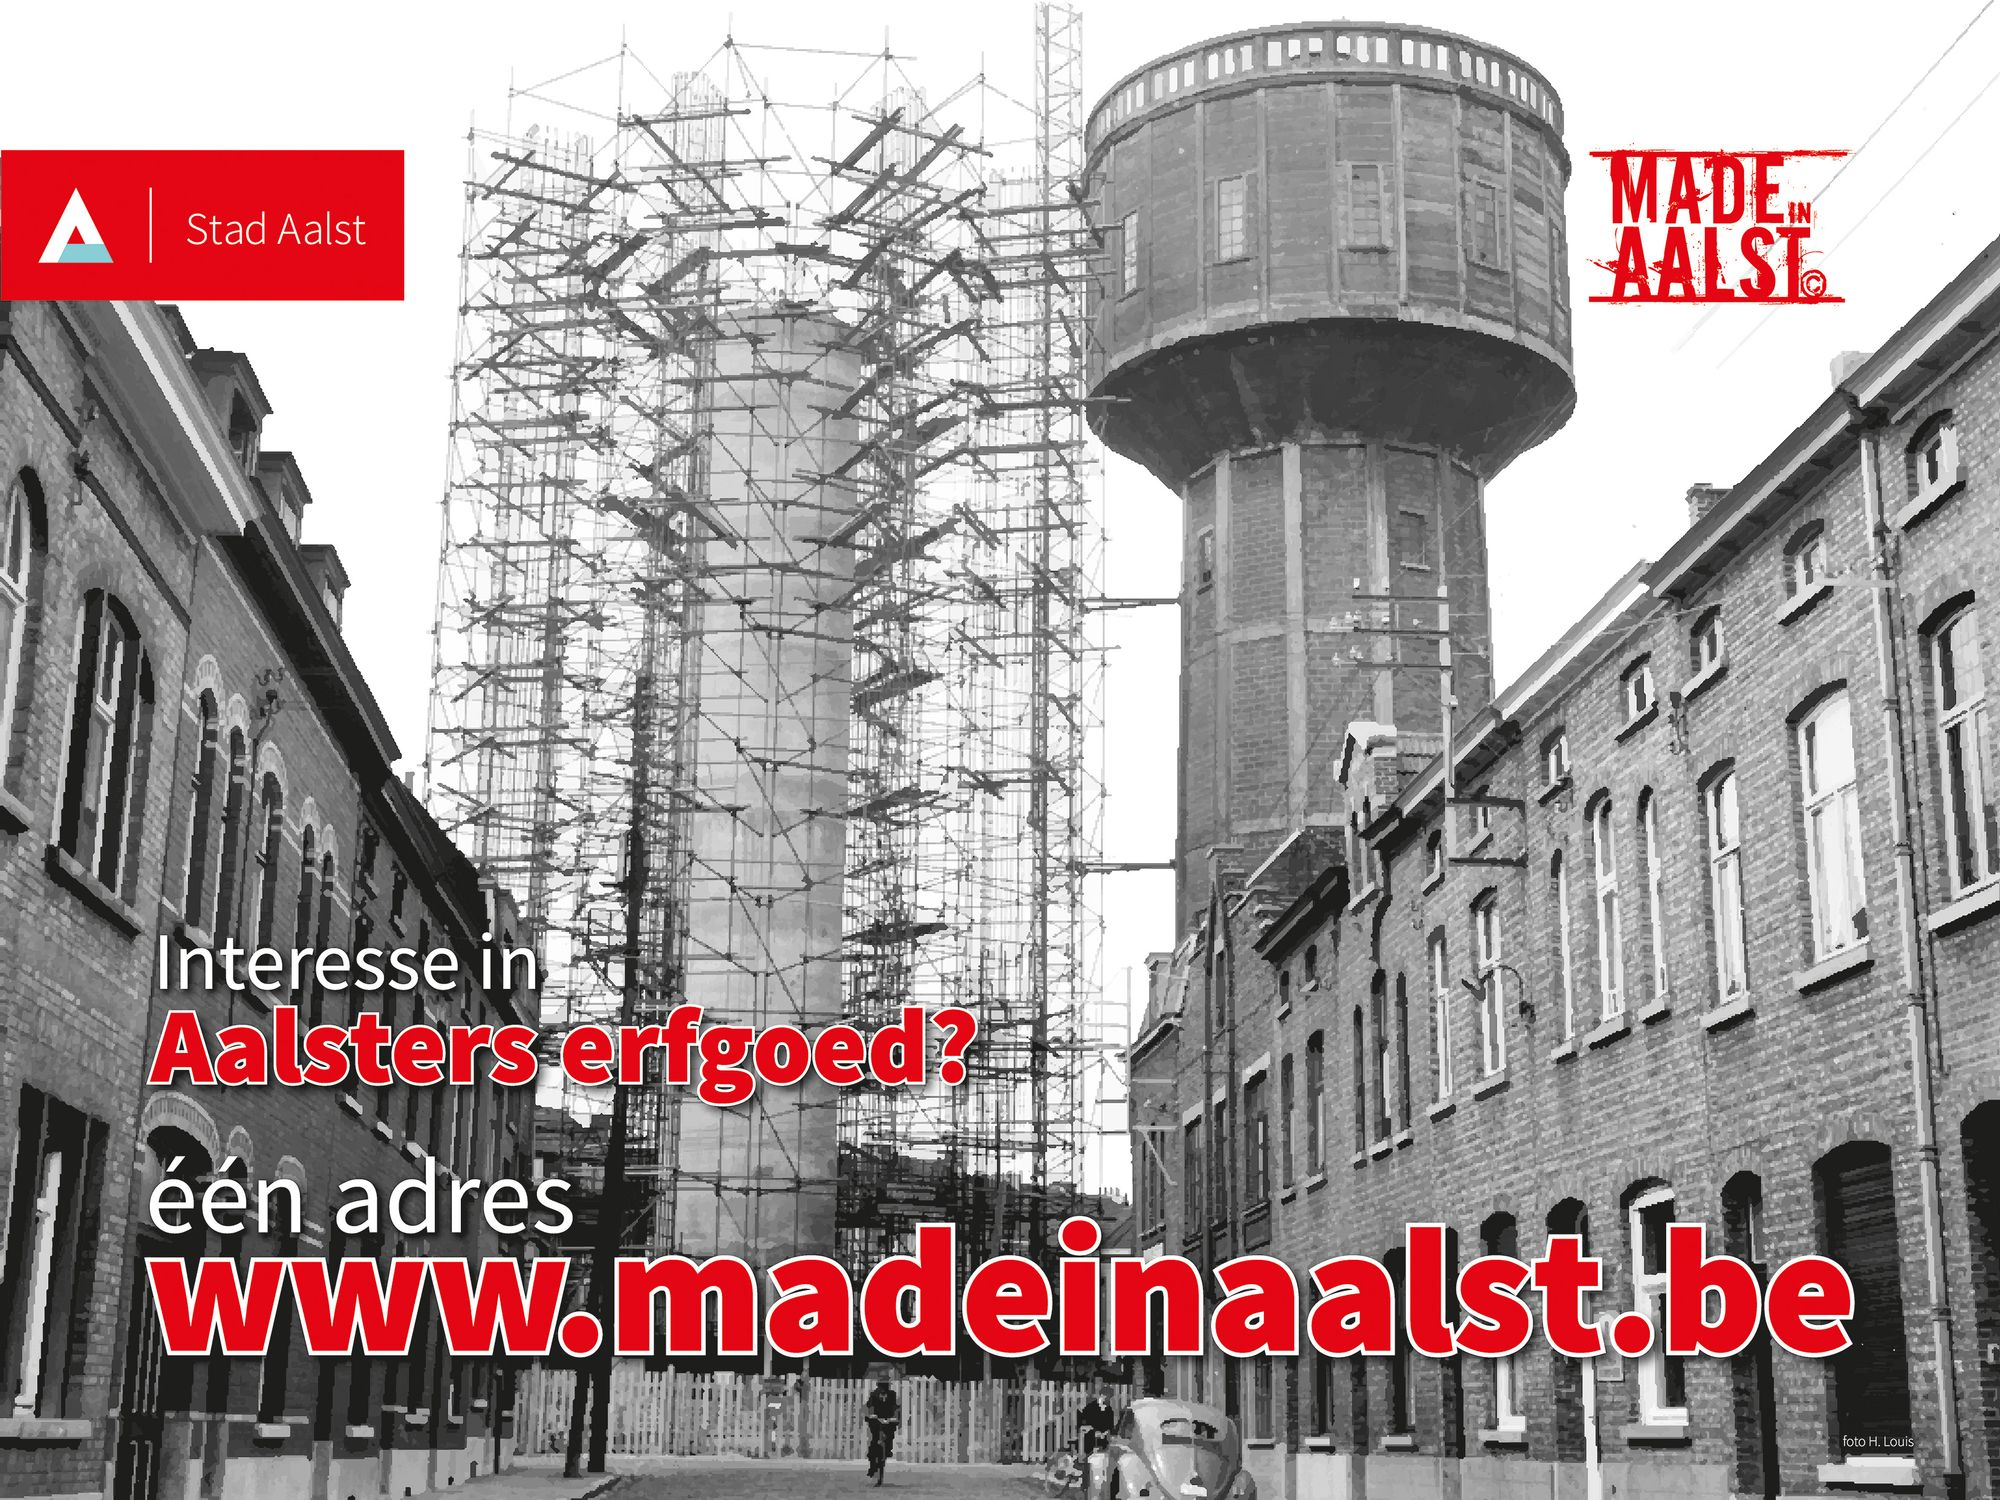 Made in Aalst